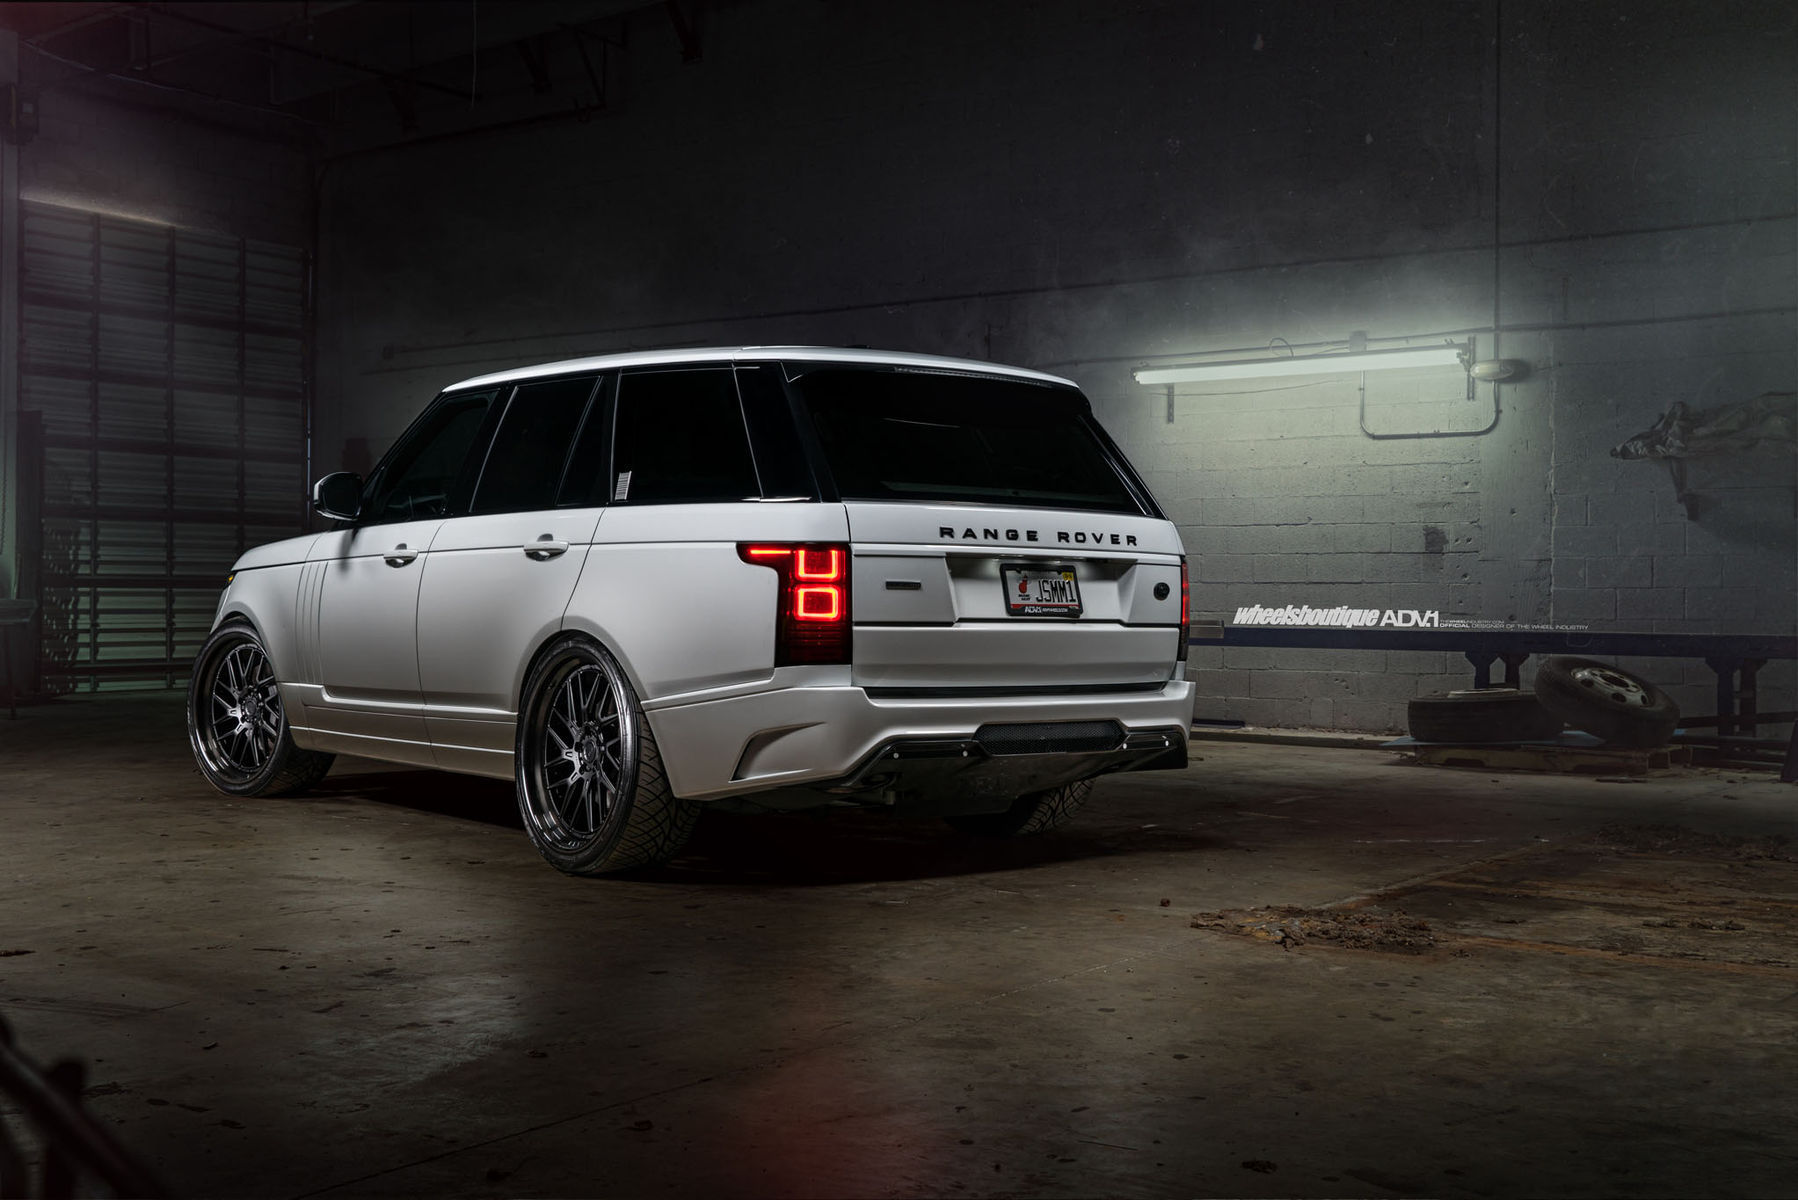 Land Rover Range Rover | ADV.1 Range Rover HSE Supercharged